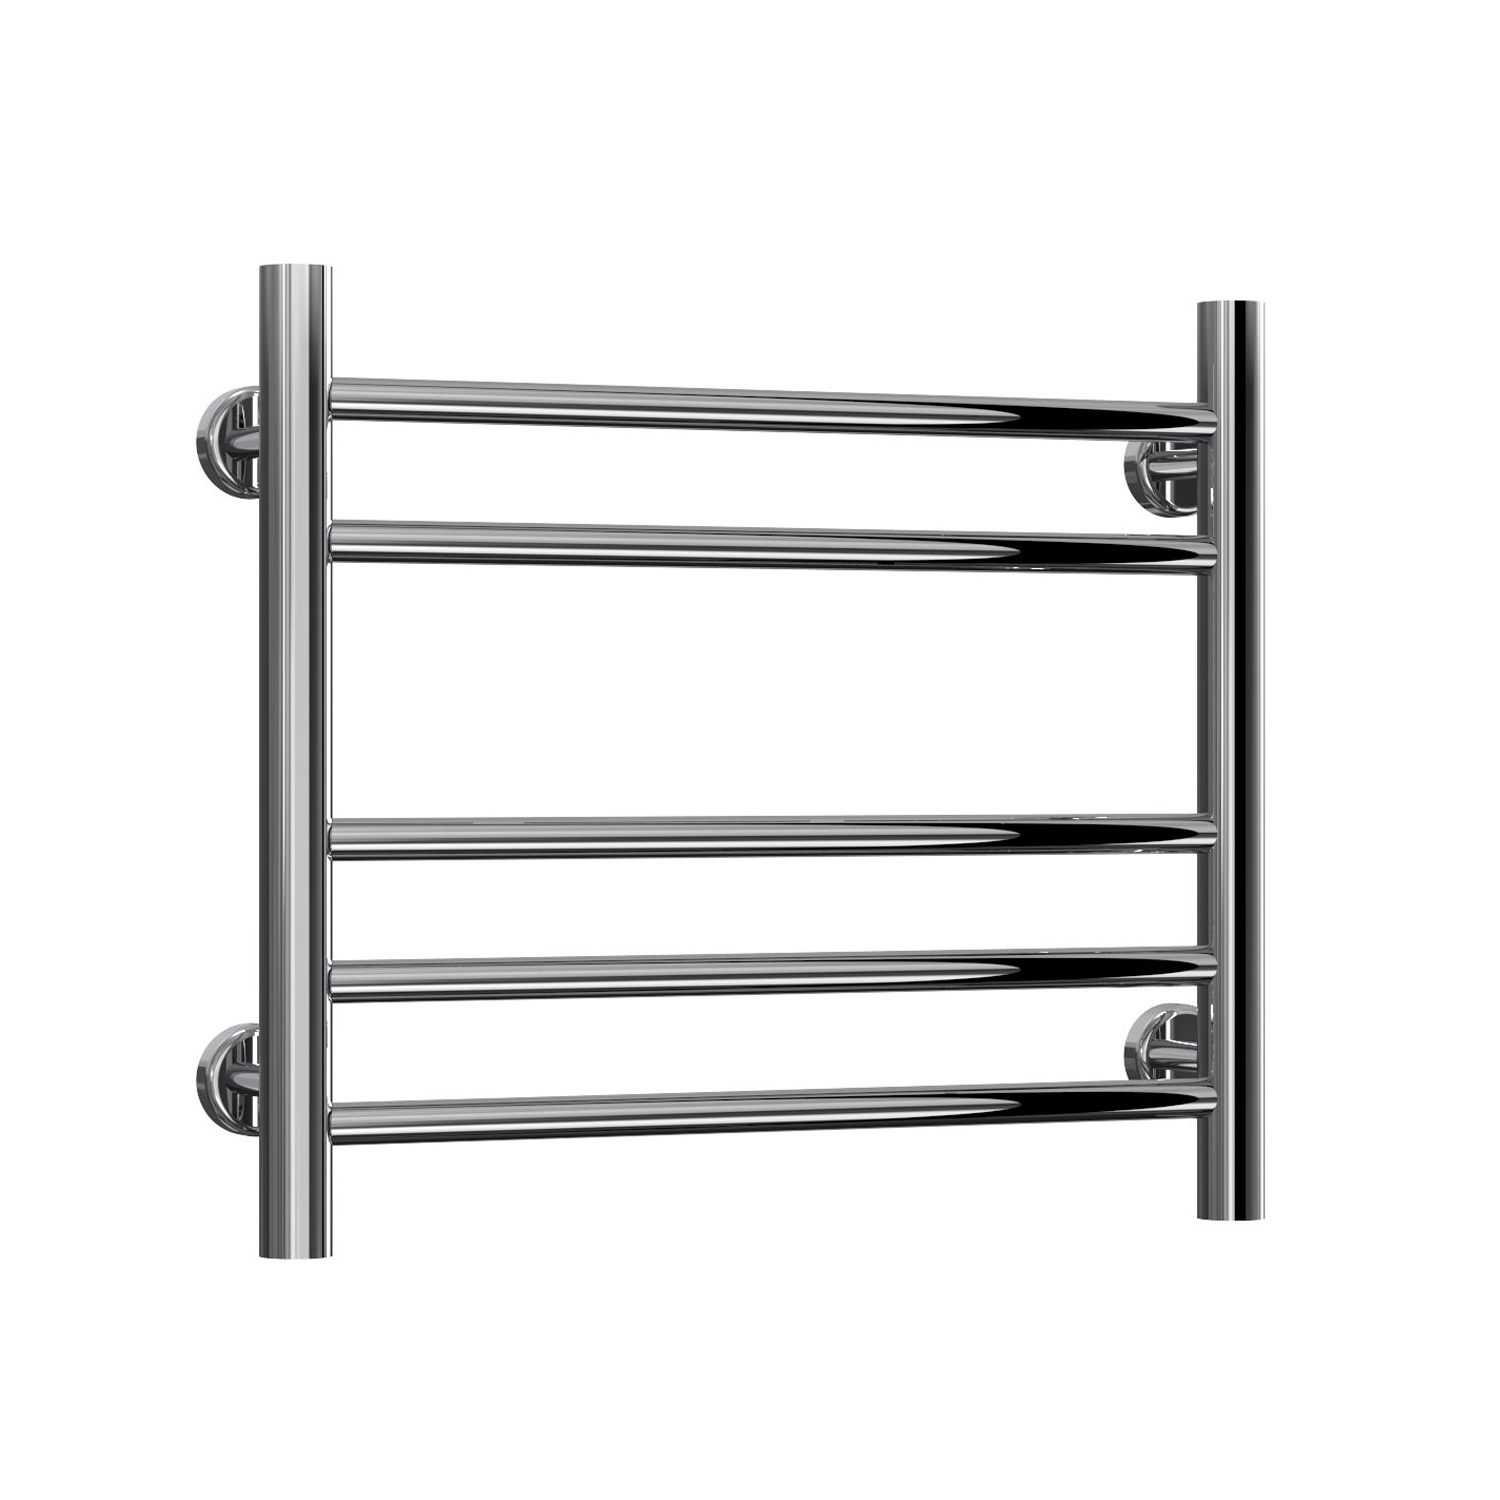 Reina Luna Straight Heated Towel Rail 720mm H x 500mm W Stainless Steel